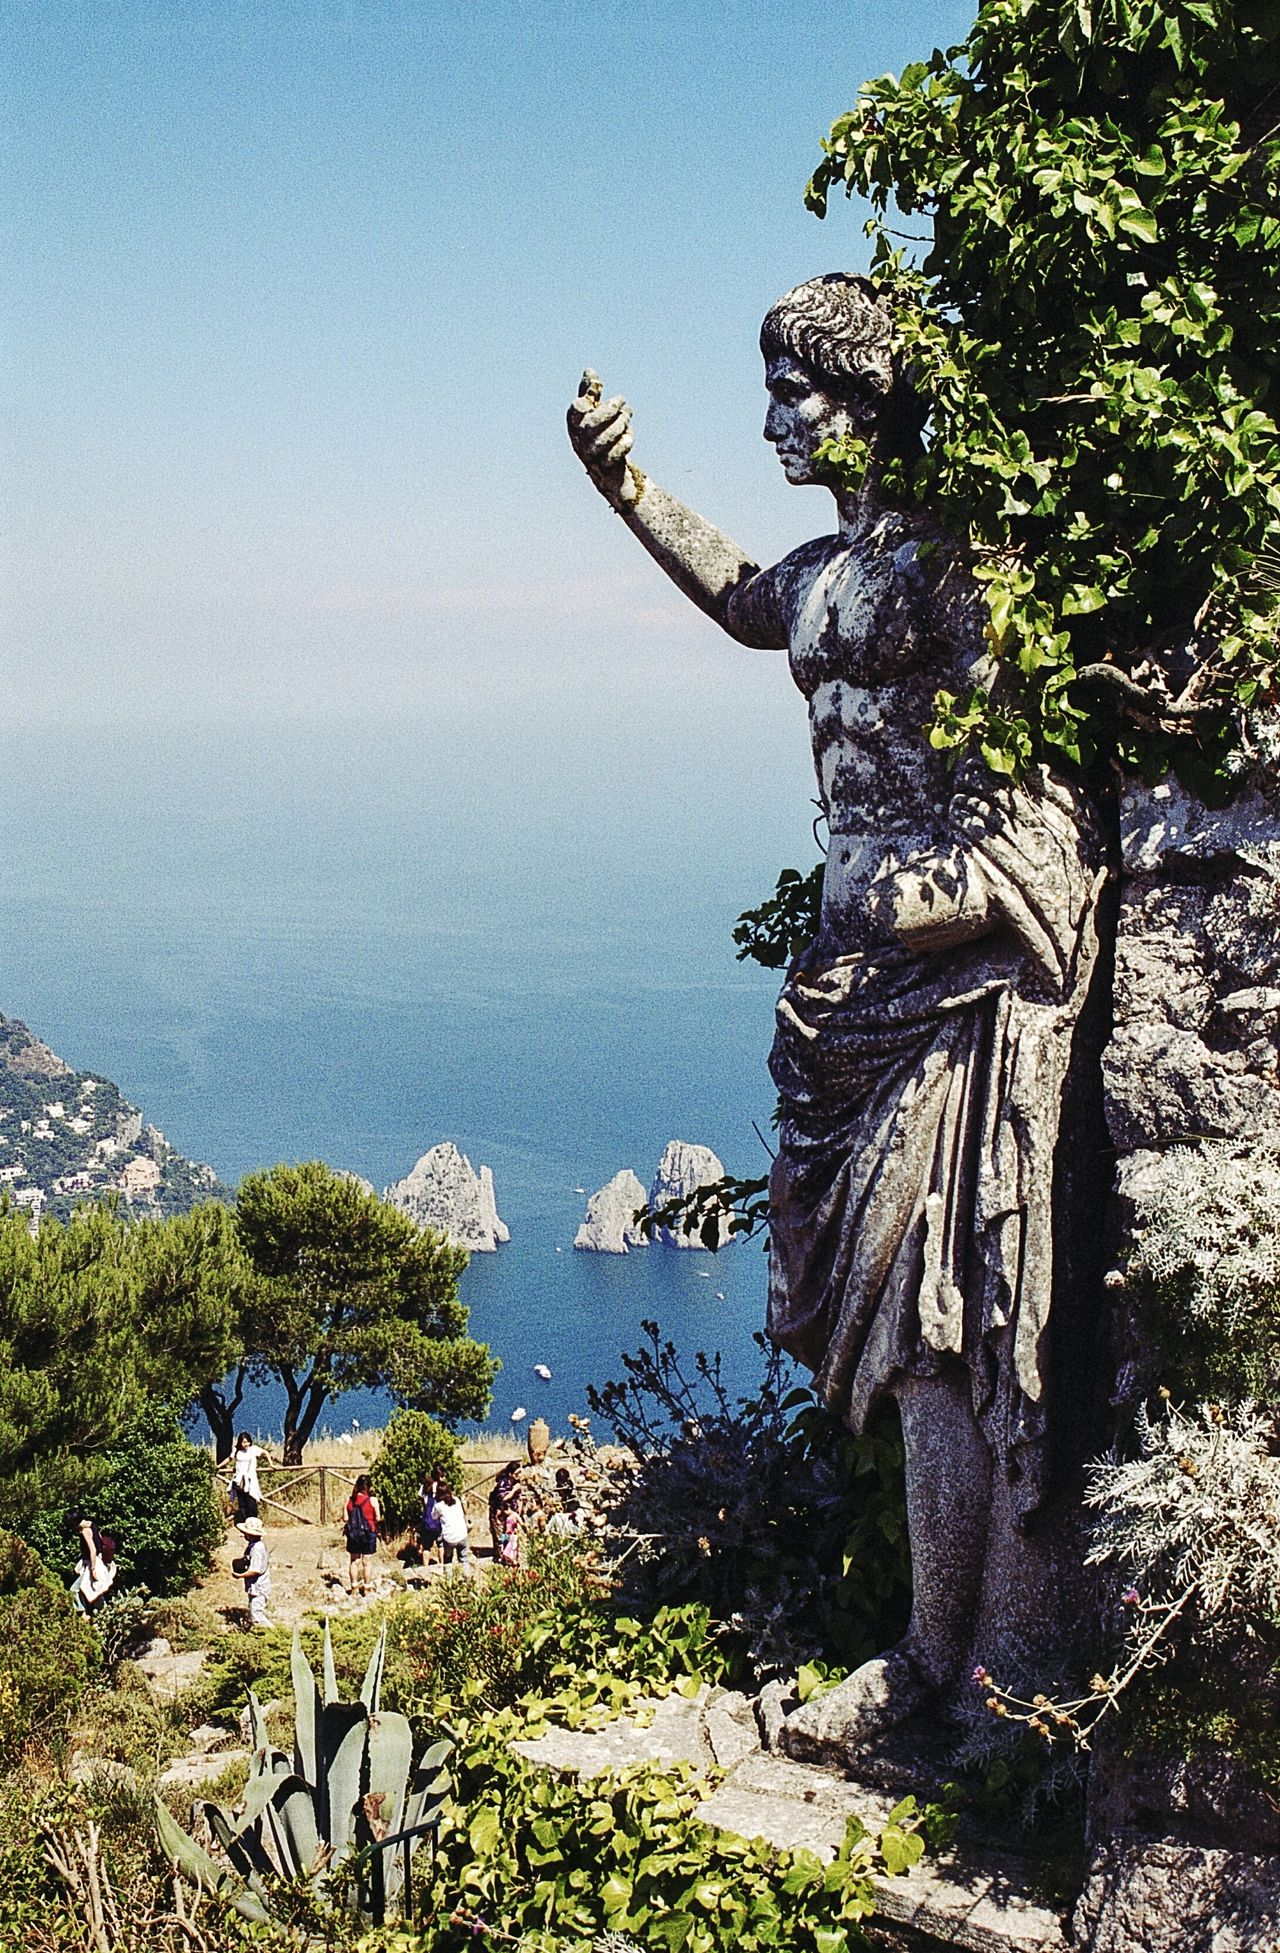 Isle of Capri, Italy Film Photography Film Is Not Dead Italy Film Travel Destinations 35mm Film Ancient Clear Sky History Statue Capri Island Capri, Italy Capri